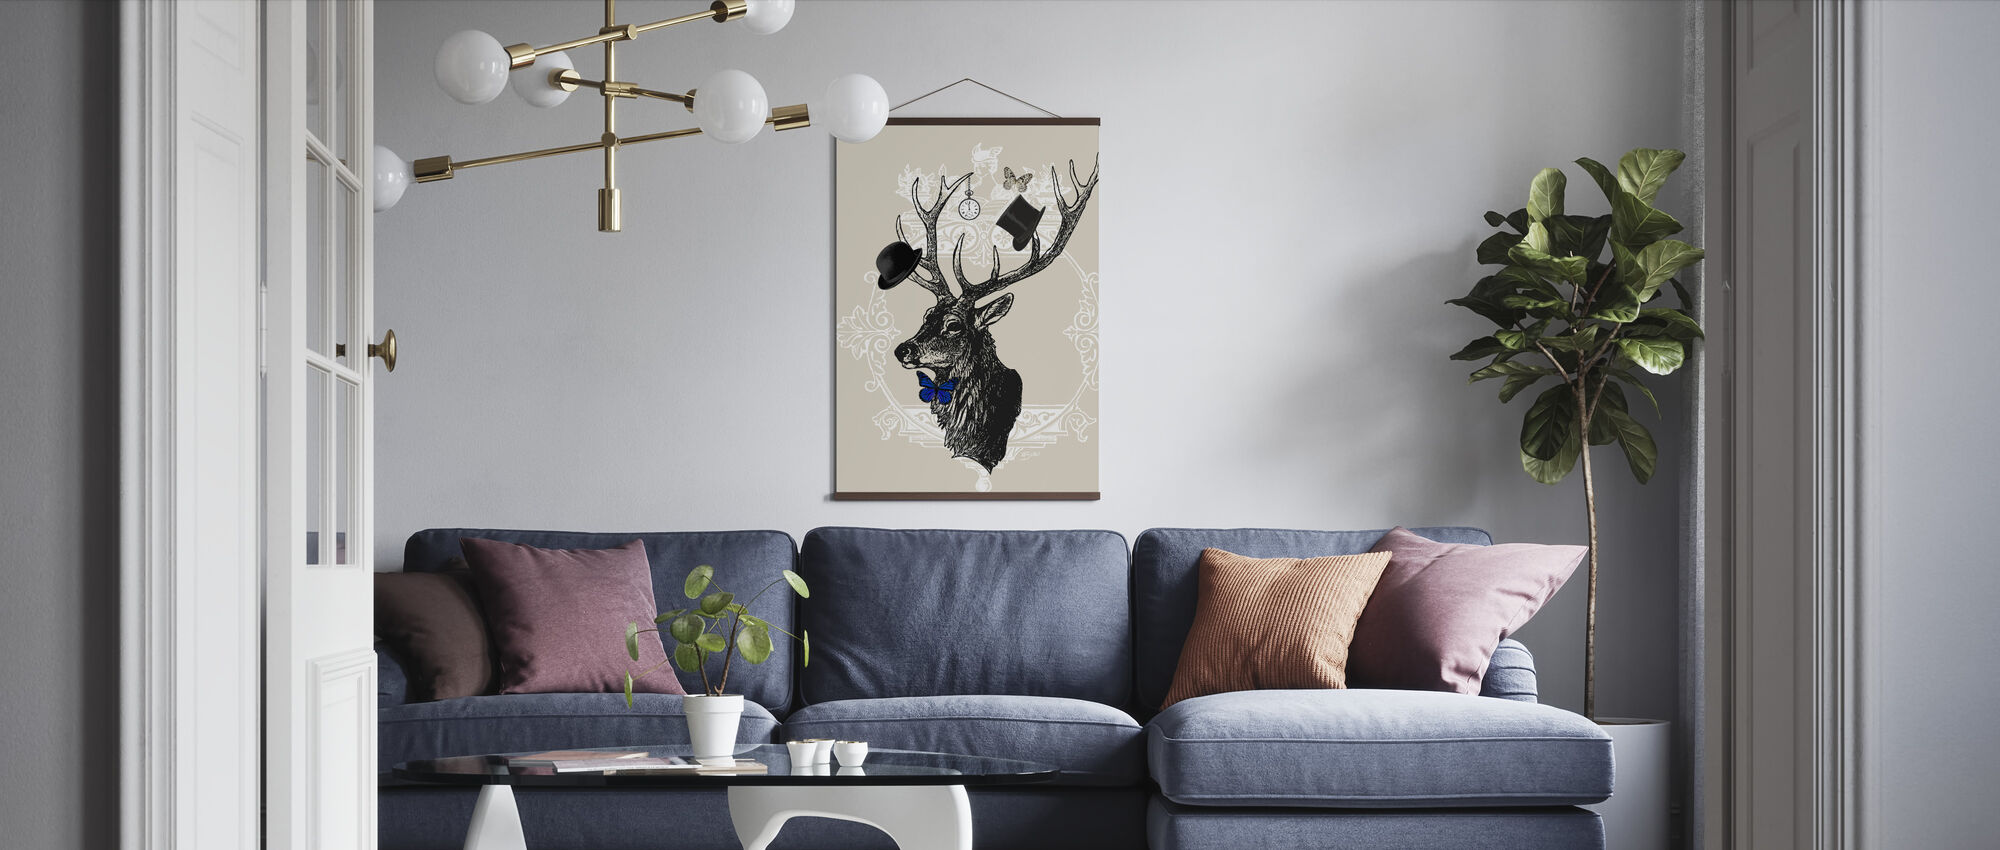 Gentleman Stag - Poster - Living Room